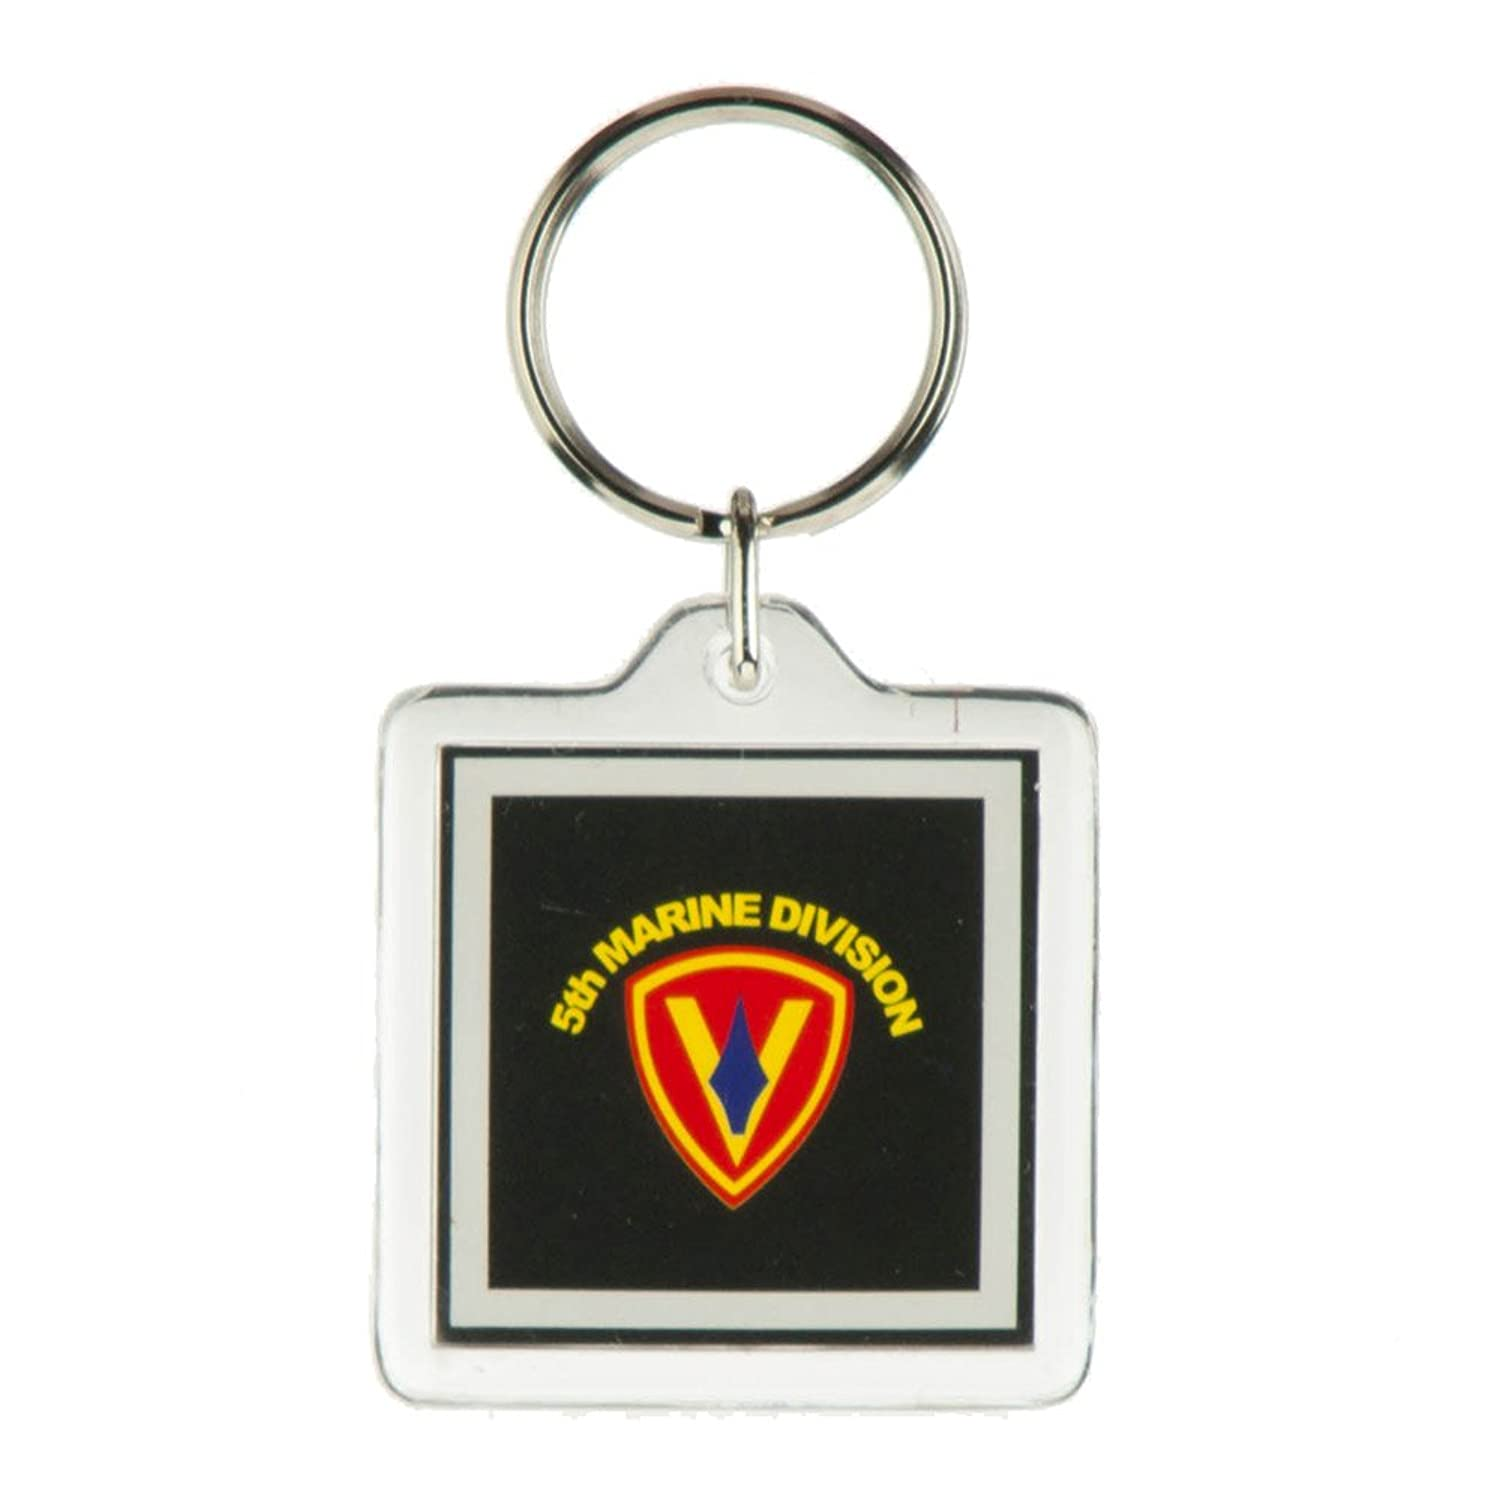 US Marine Corps Division Military Key Rings - 5th